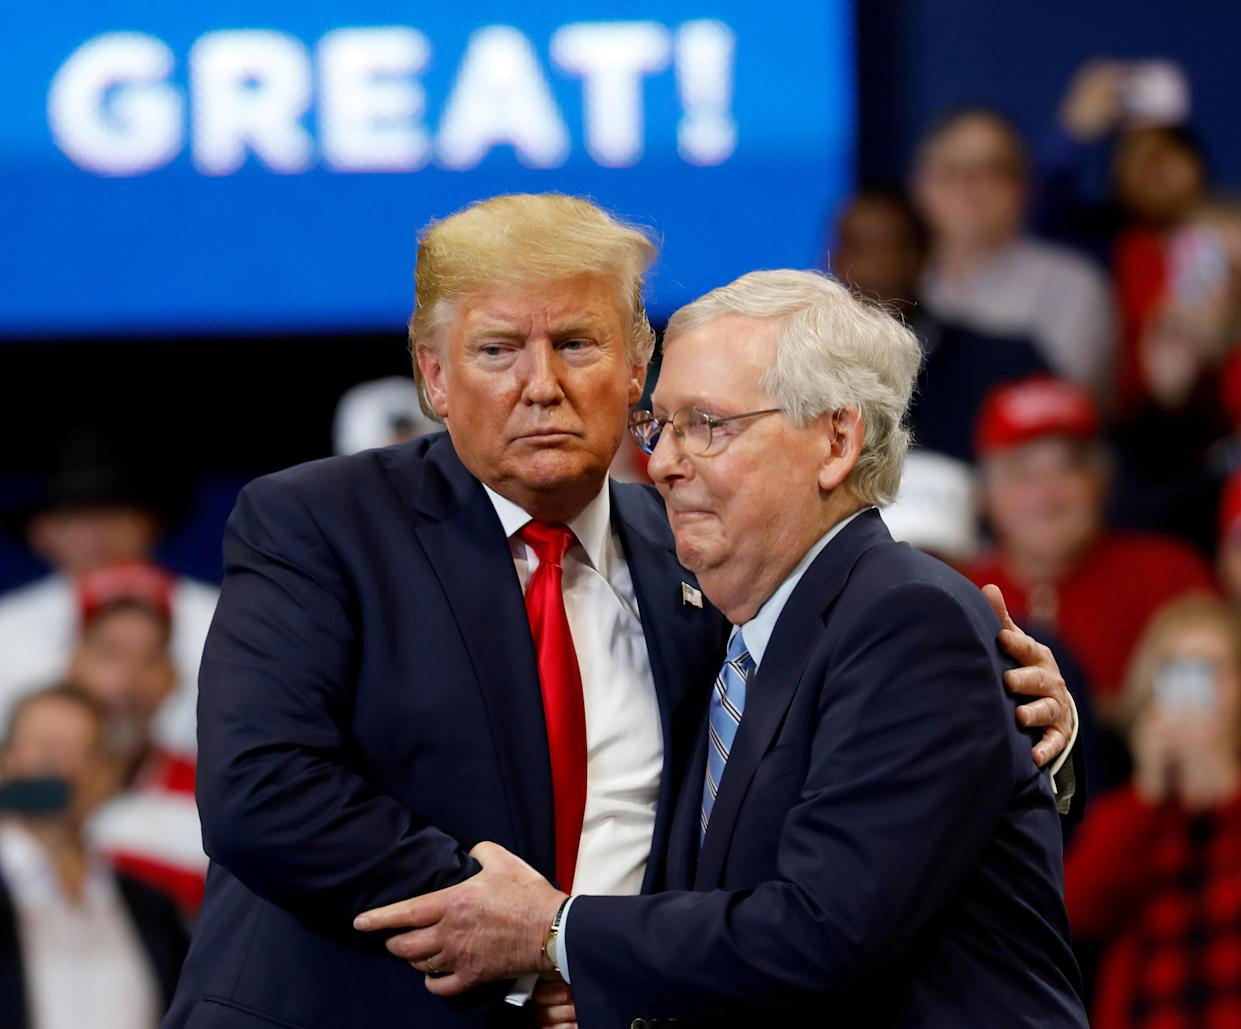 Senator Mitch McConnell (R-KY) hugs U.S. President Donald Trump at a campaign rally at the Rupp Arena in Lexington, Kentucky, U.S., November 4, 2019. REUTERS/Yuri Gripas     TPX IMAGES OF THE DAY